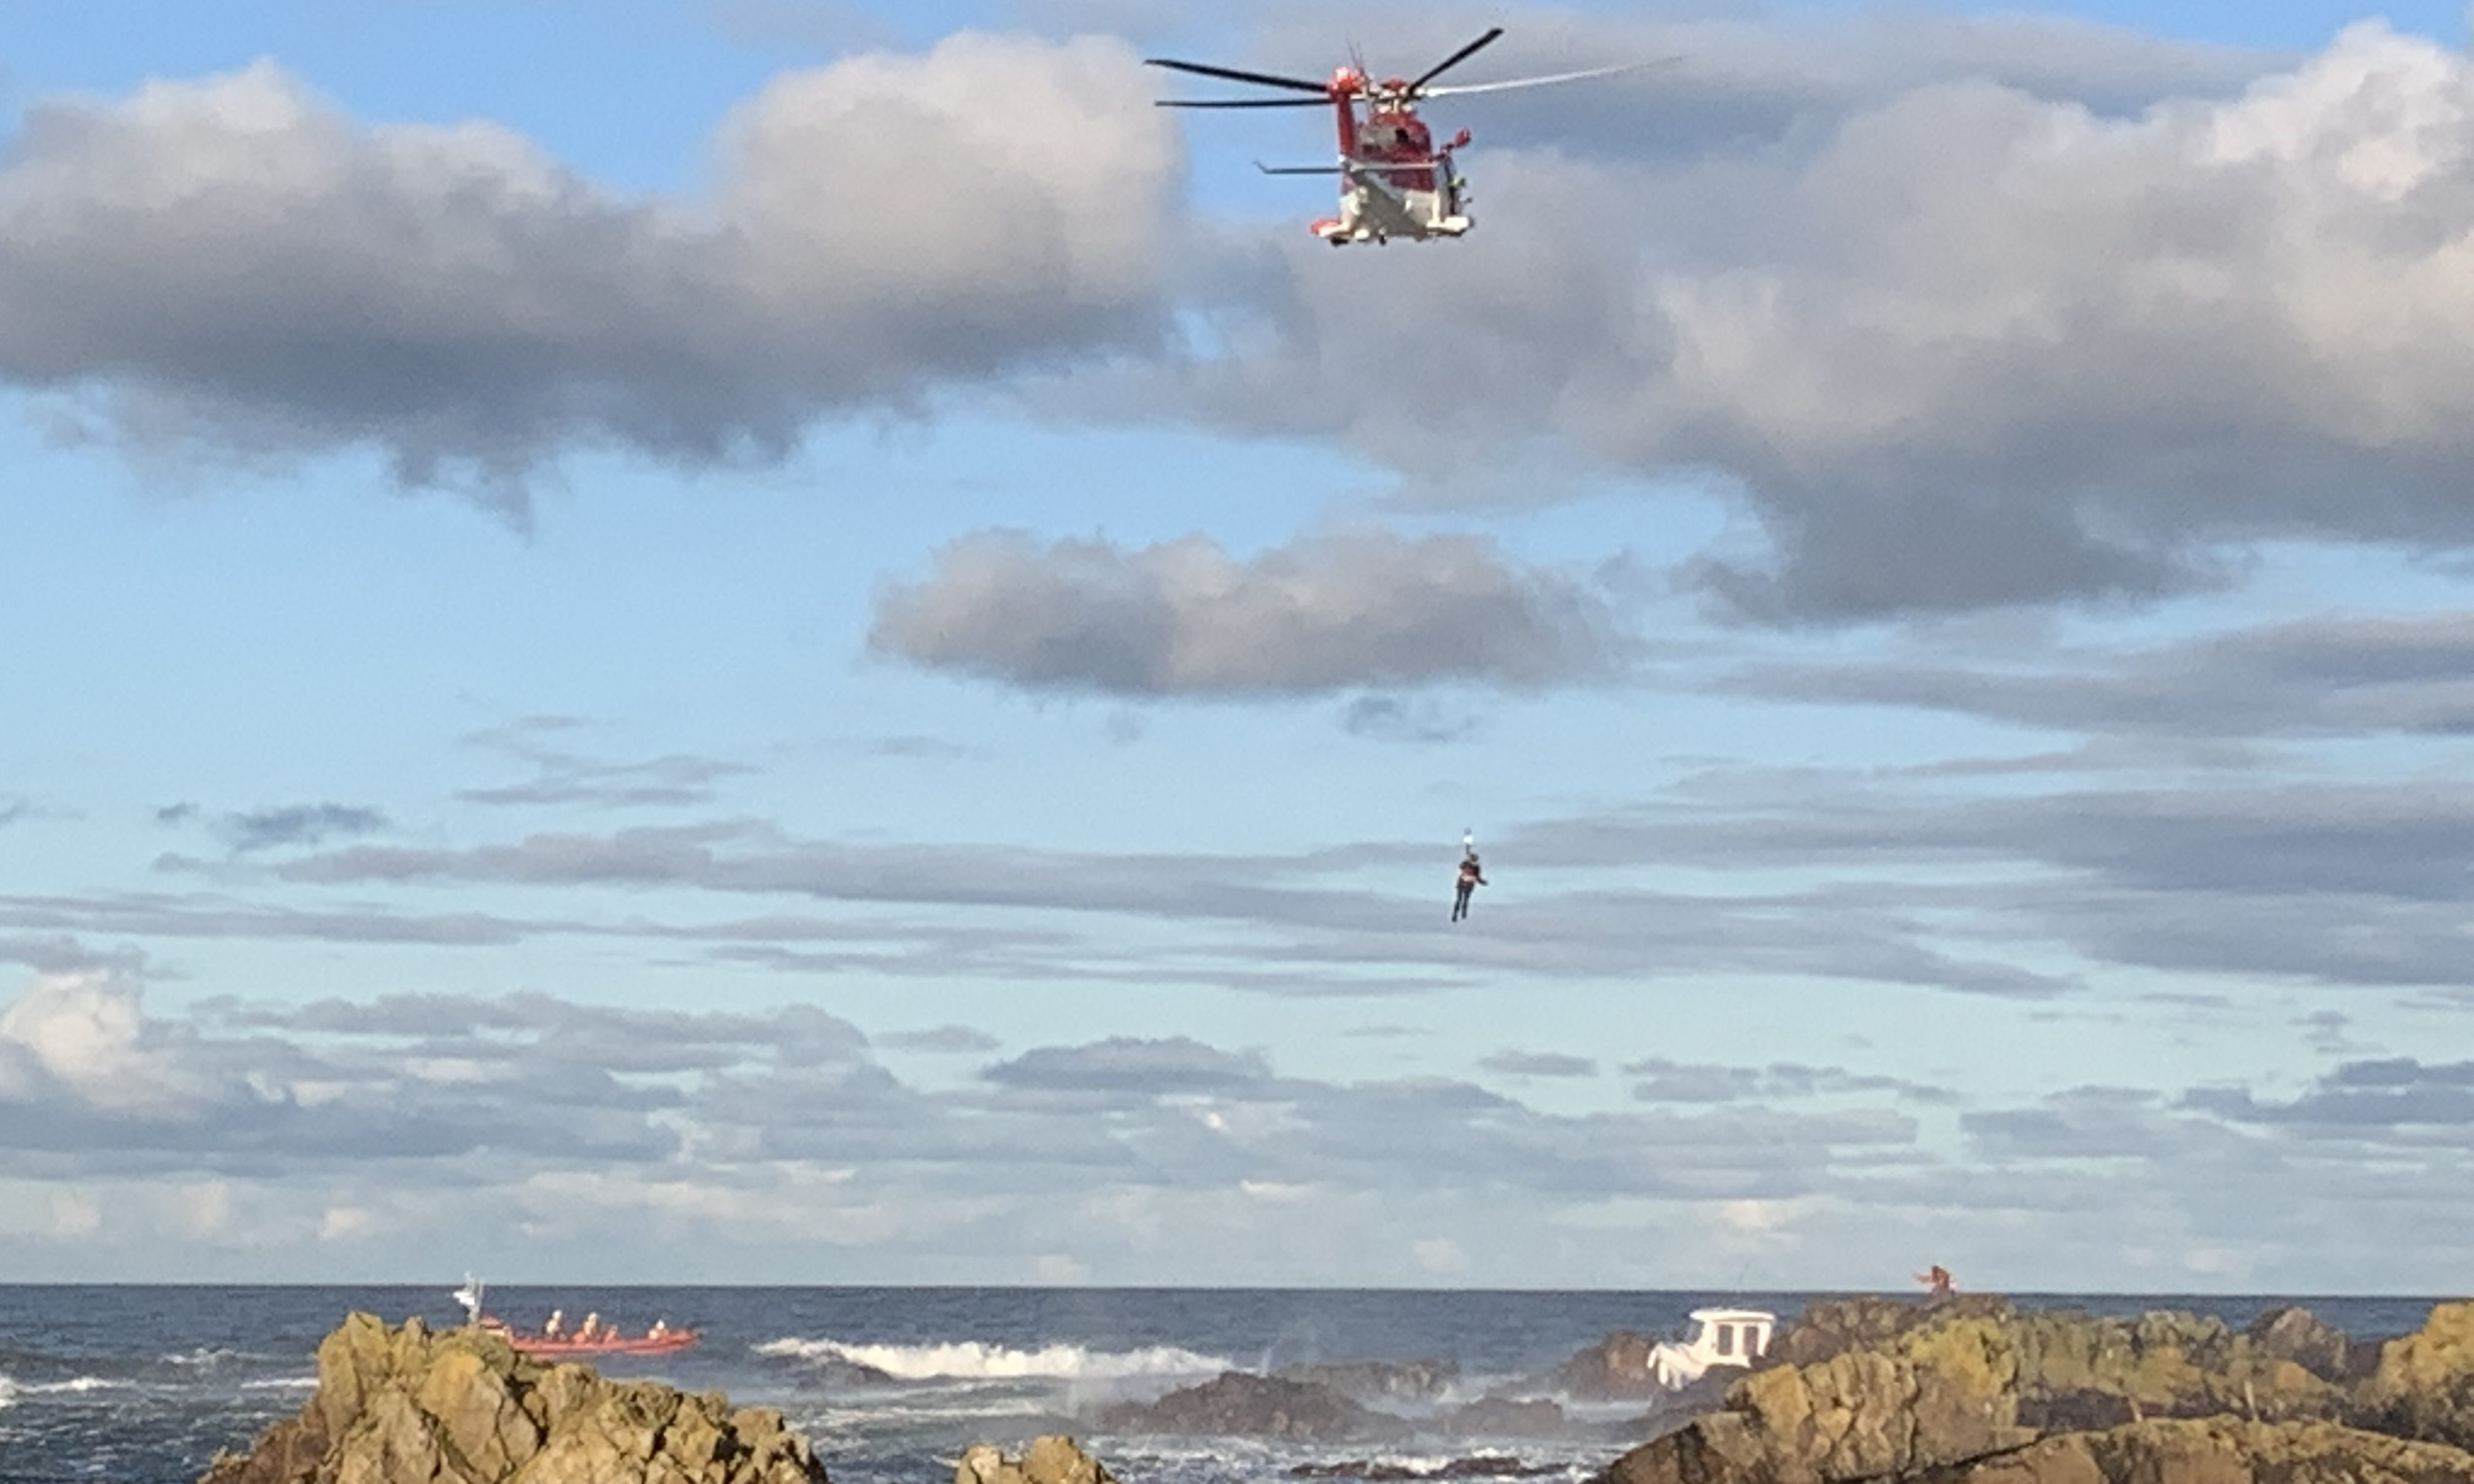 Coastguard helicopter on the scene.